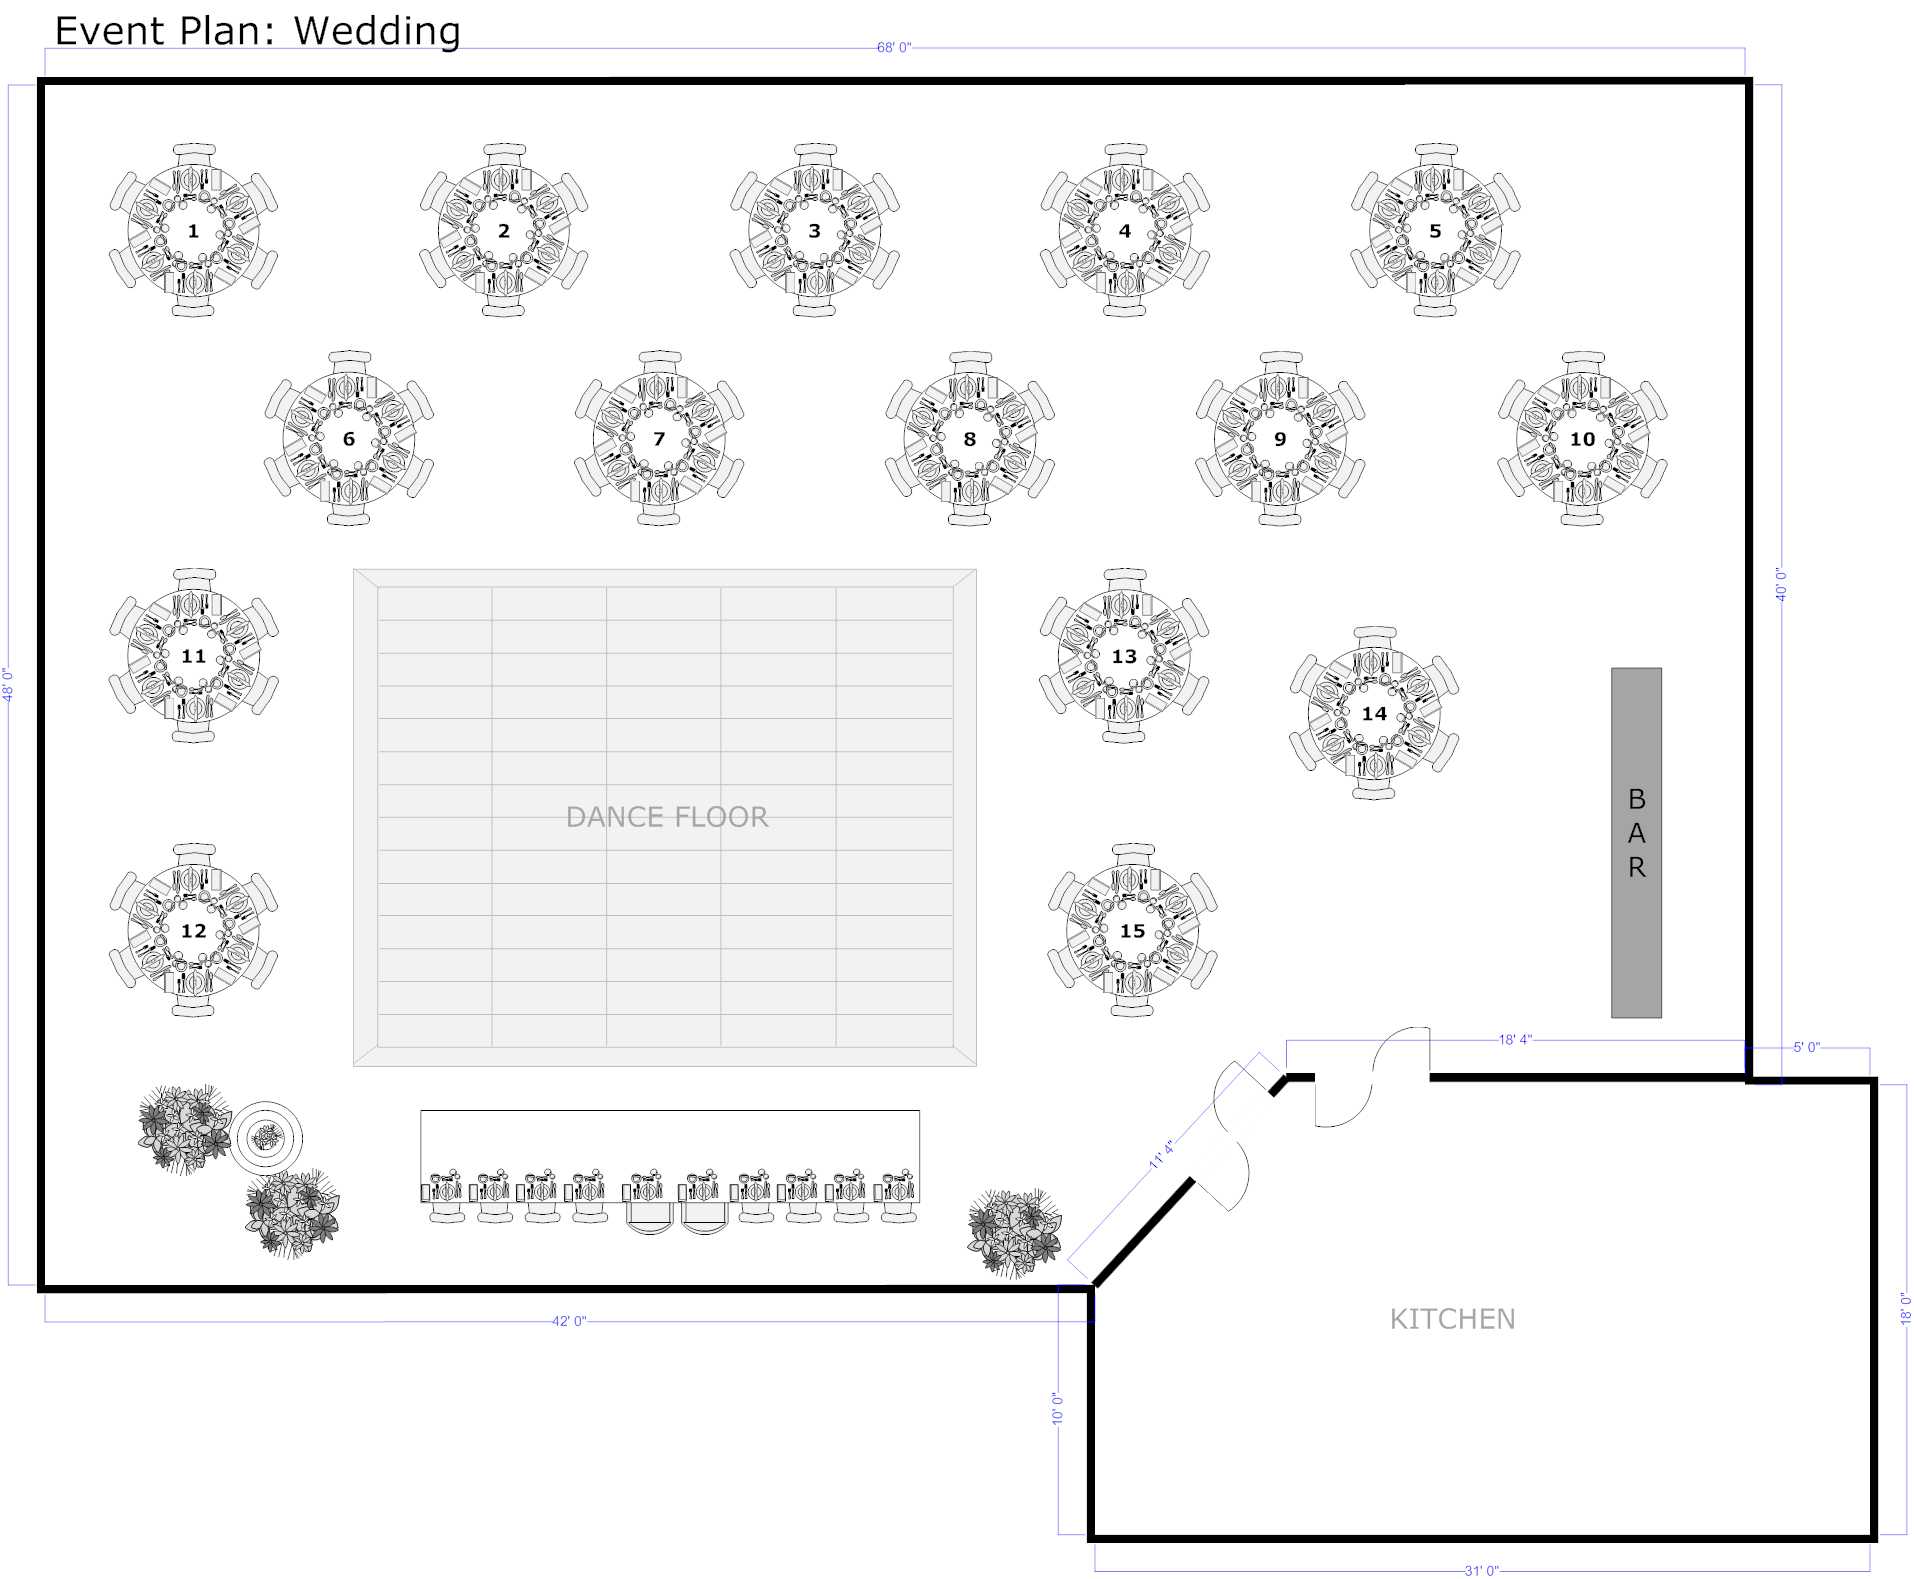 Event planning software try it free for easy layout for Trade show floor plan software